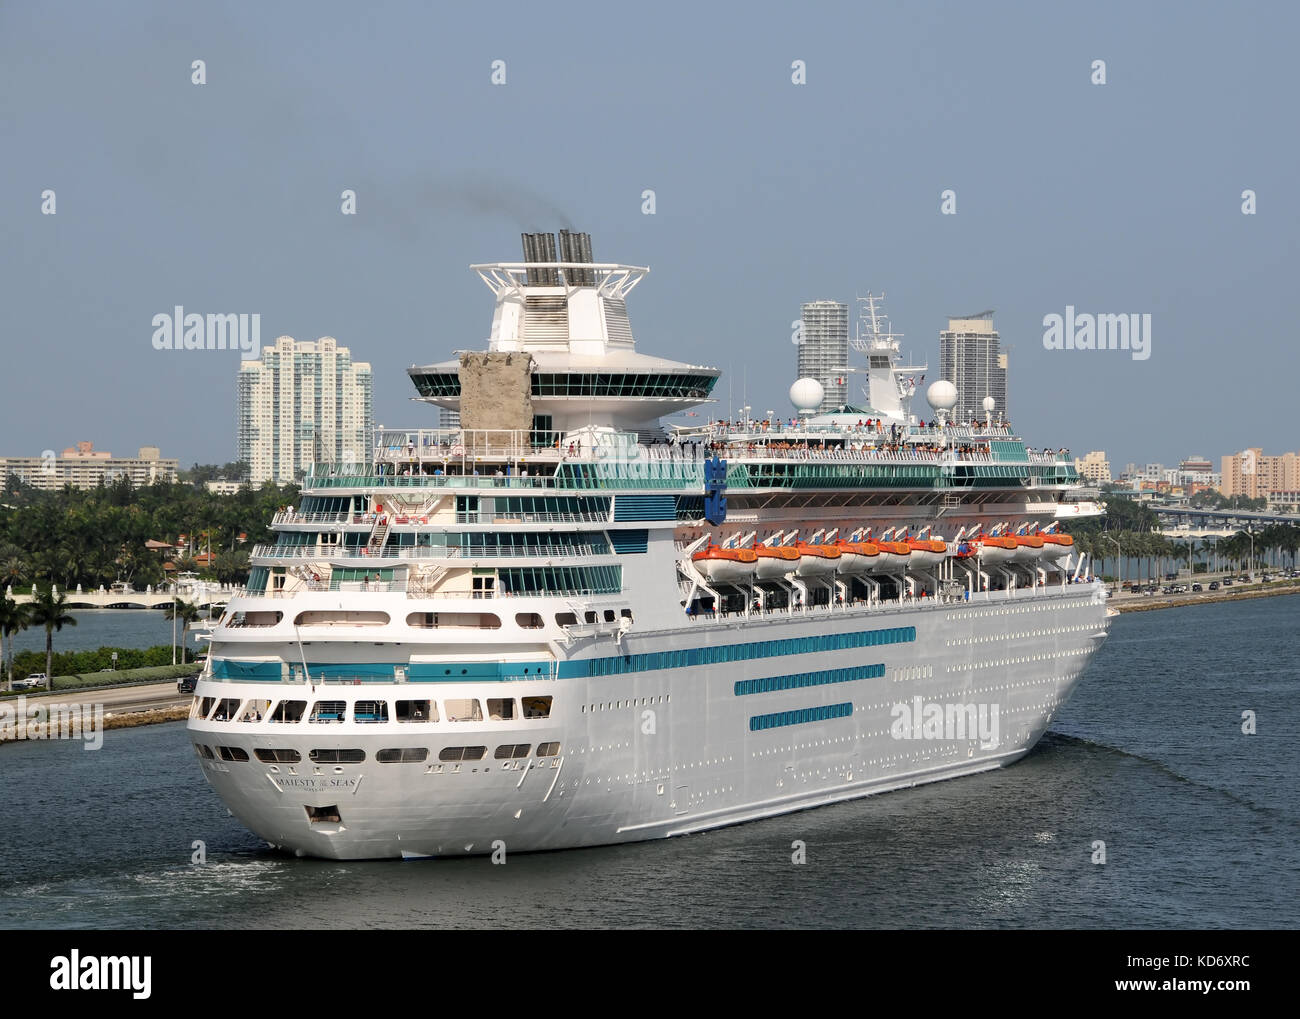 Miami, USA - July 18, 2008: Majesty of the Seas of Royal Caribbean Cruise Lines departing the Port of Miami. Miami - Stock Image